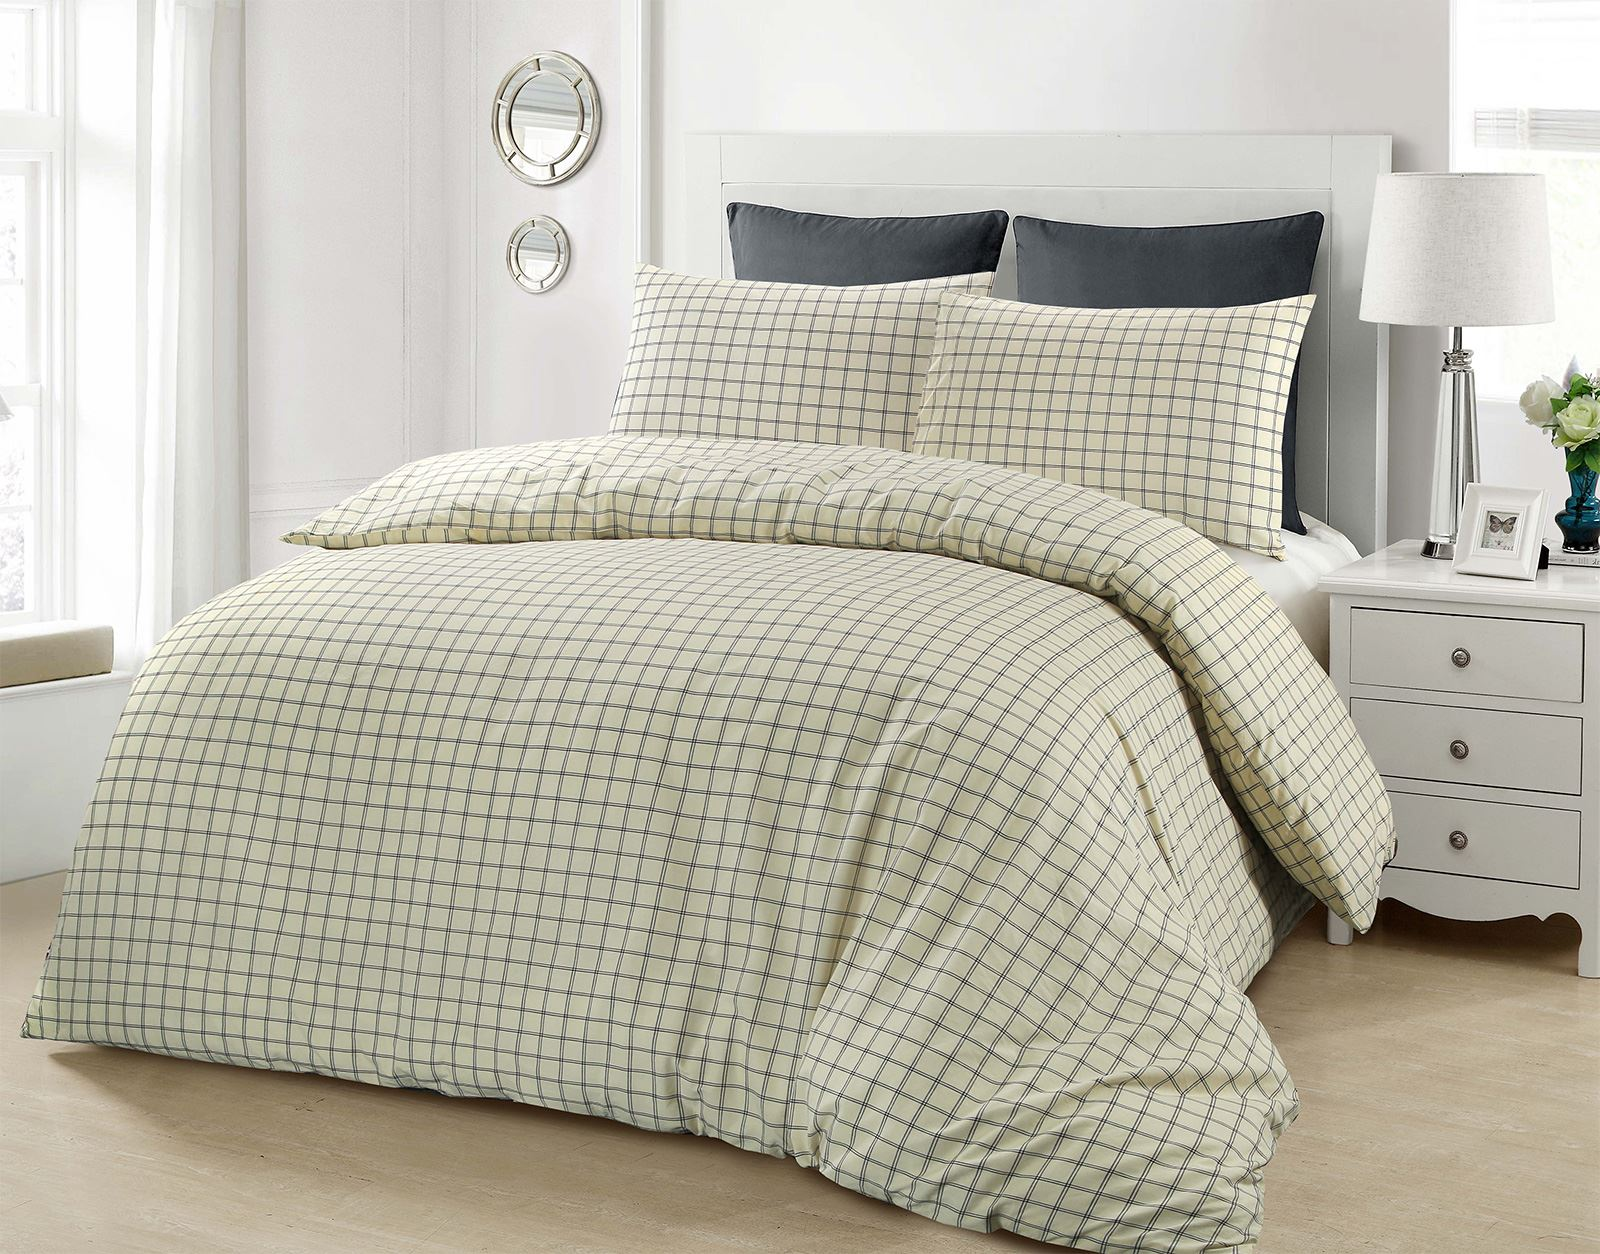 jaipur  cotton woven checked check cream navy blue duvet cover  - jaipur  cotton woven checked check cream navy blue duvet cover beddingset